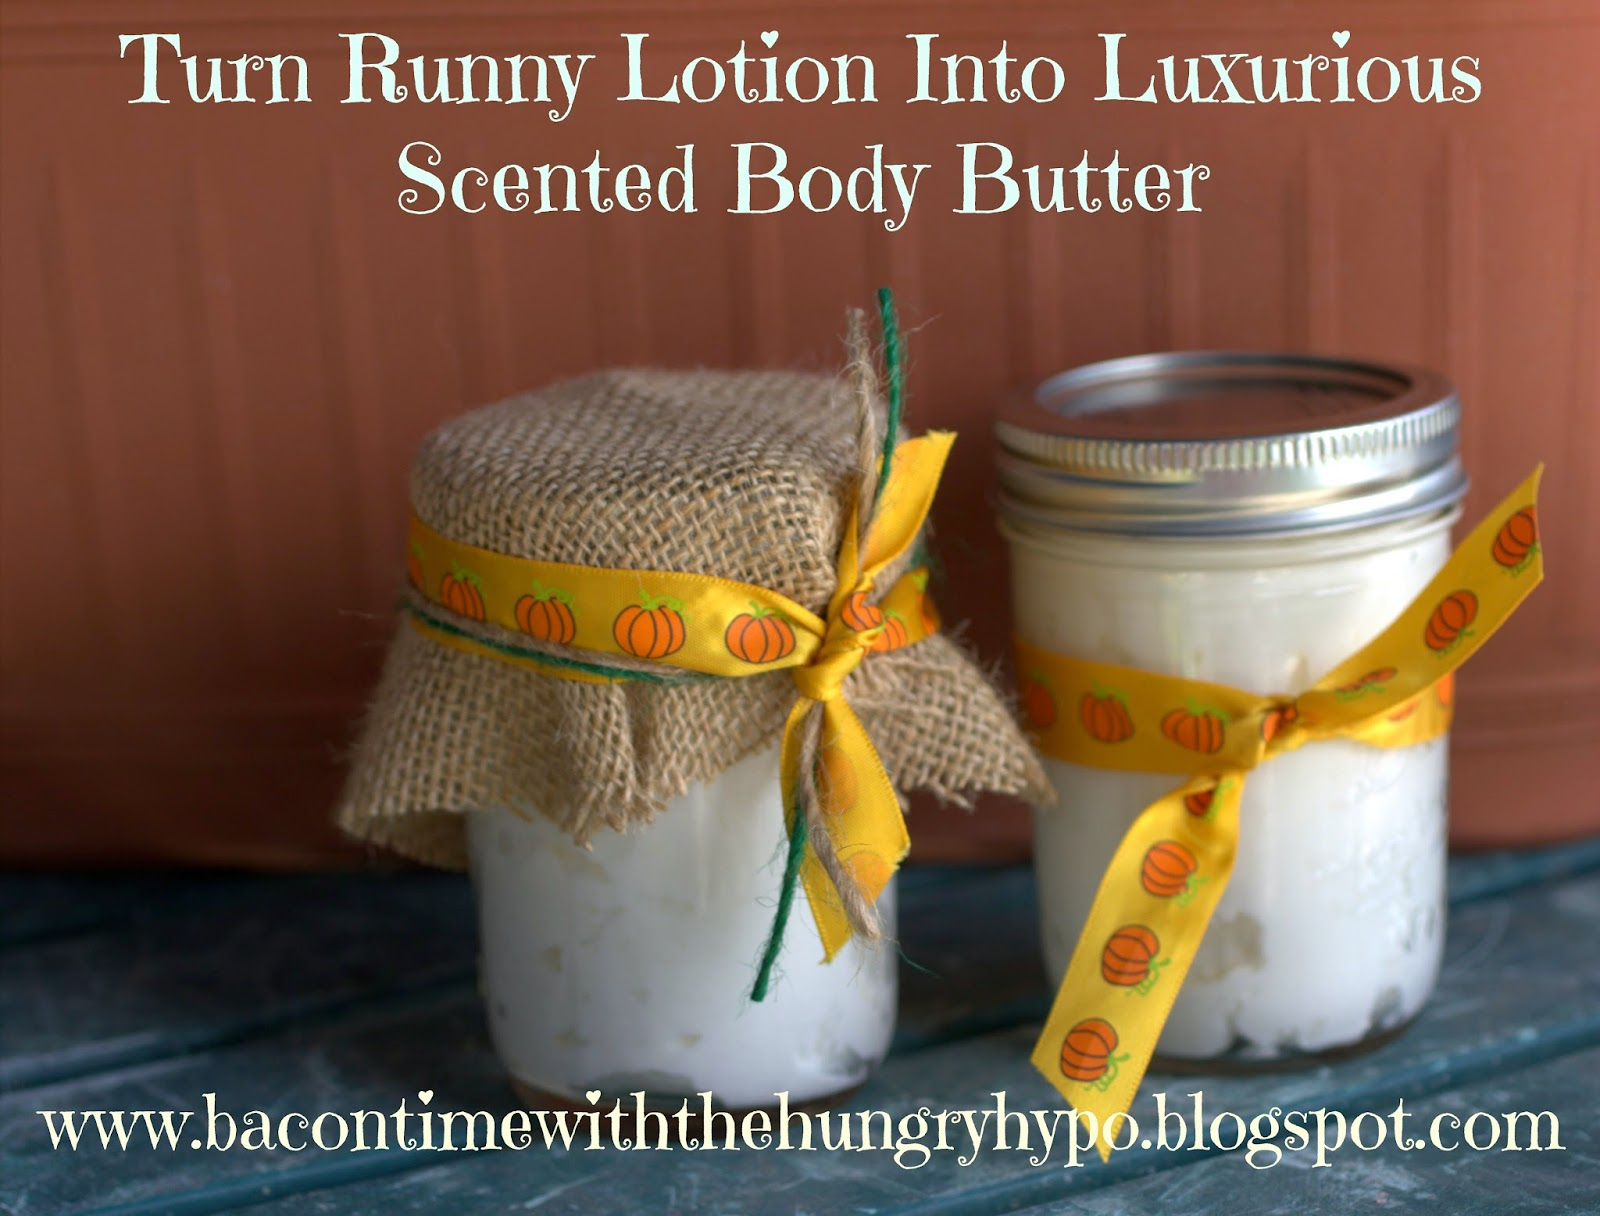 turn runny lotion into luxurious scented body butter